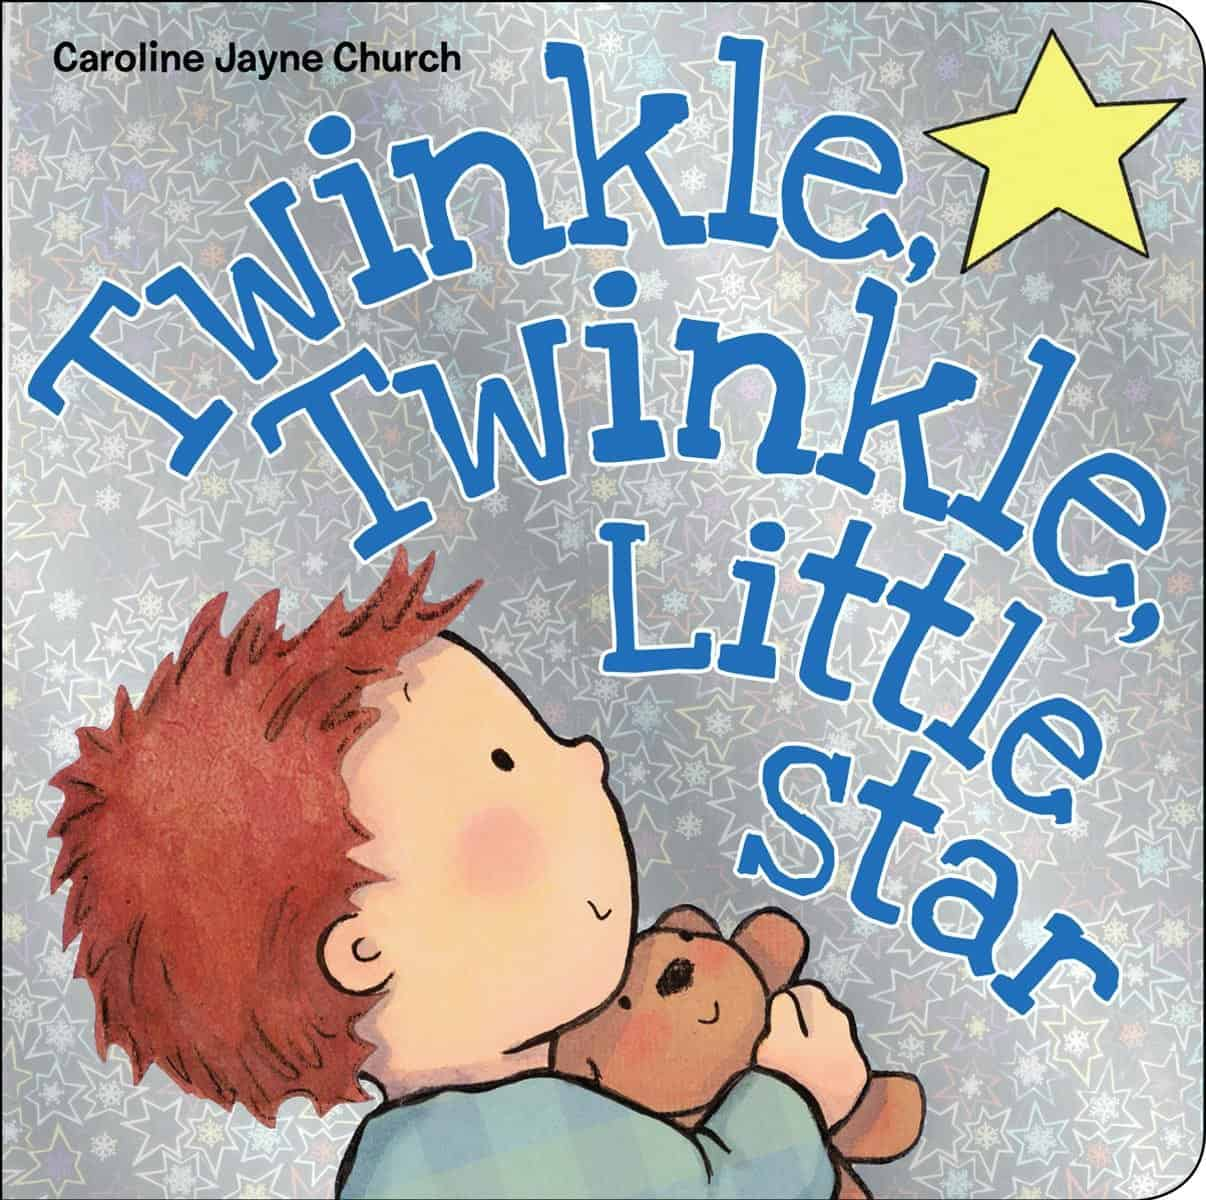 Twinkle, Twinkle, Little Star by Caroline Jayne Church